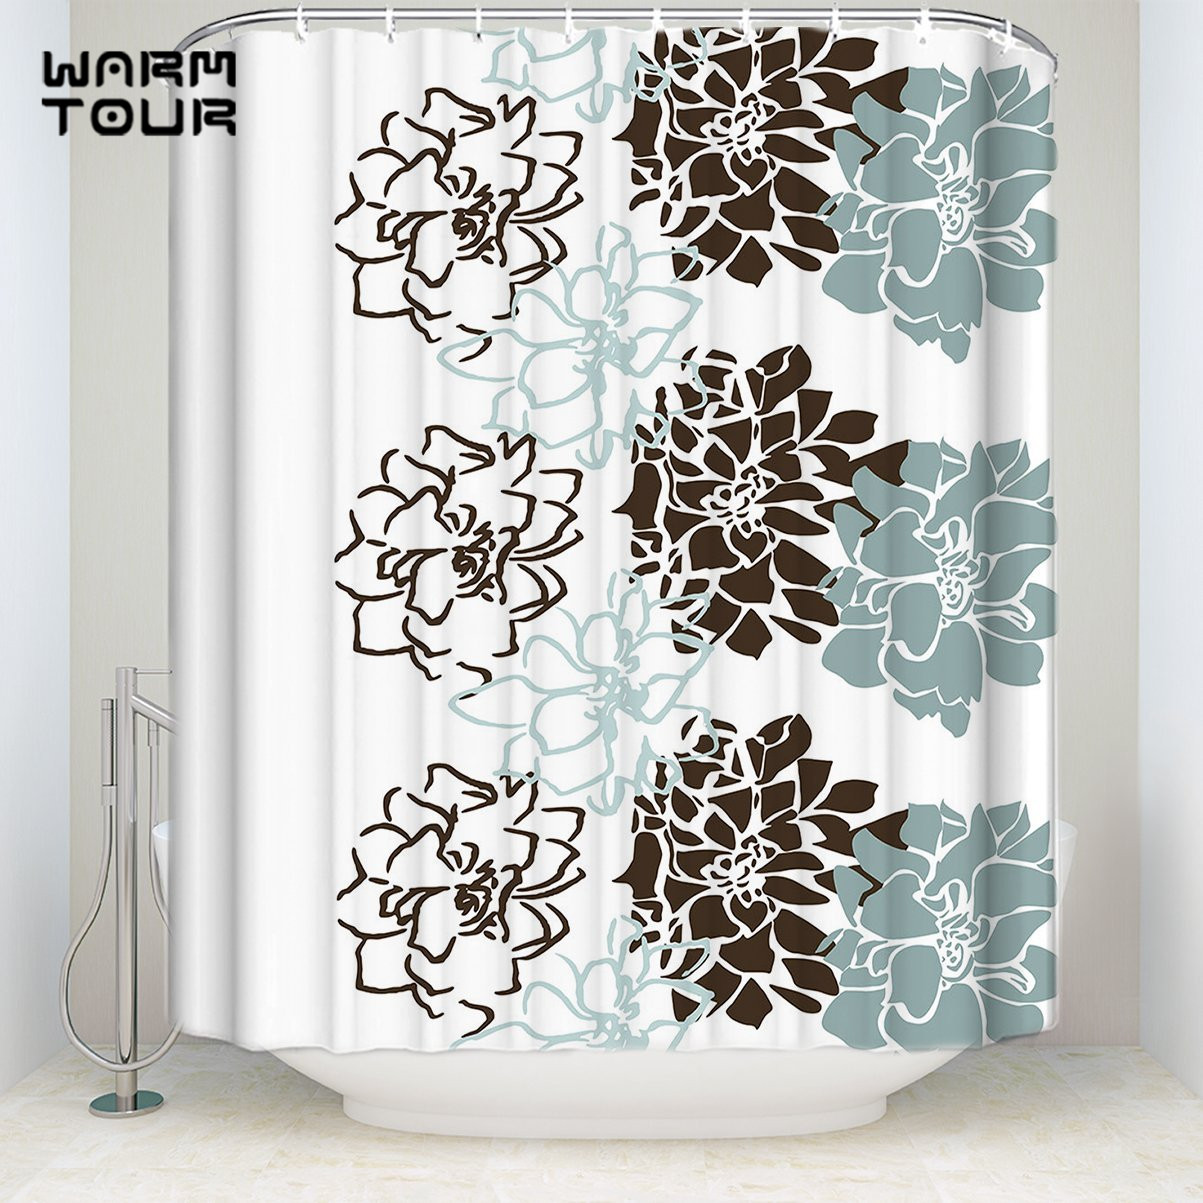 Bath Shower Curtains Geometric Flowers Blue Brown White Welcome